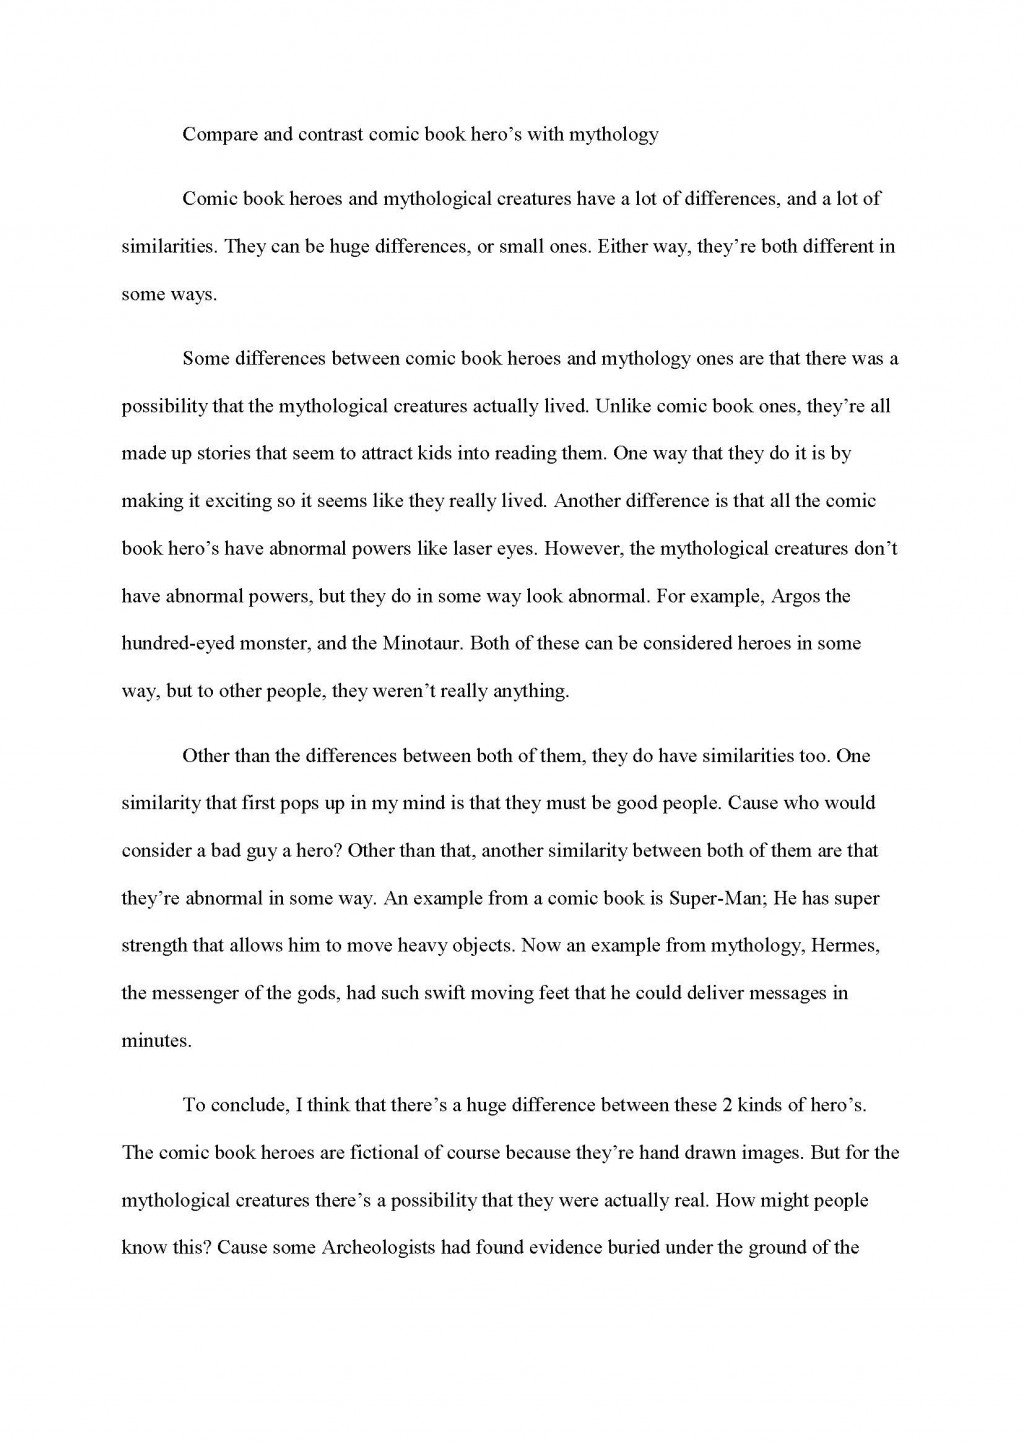 014 Essay Topics For Life Of Pi Compare And Contrast Sample Incredible Research Paper Prompts Writing Large